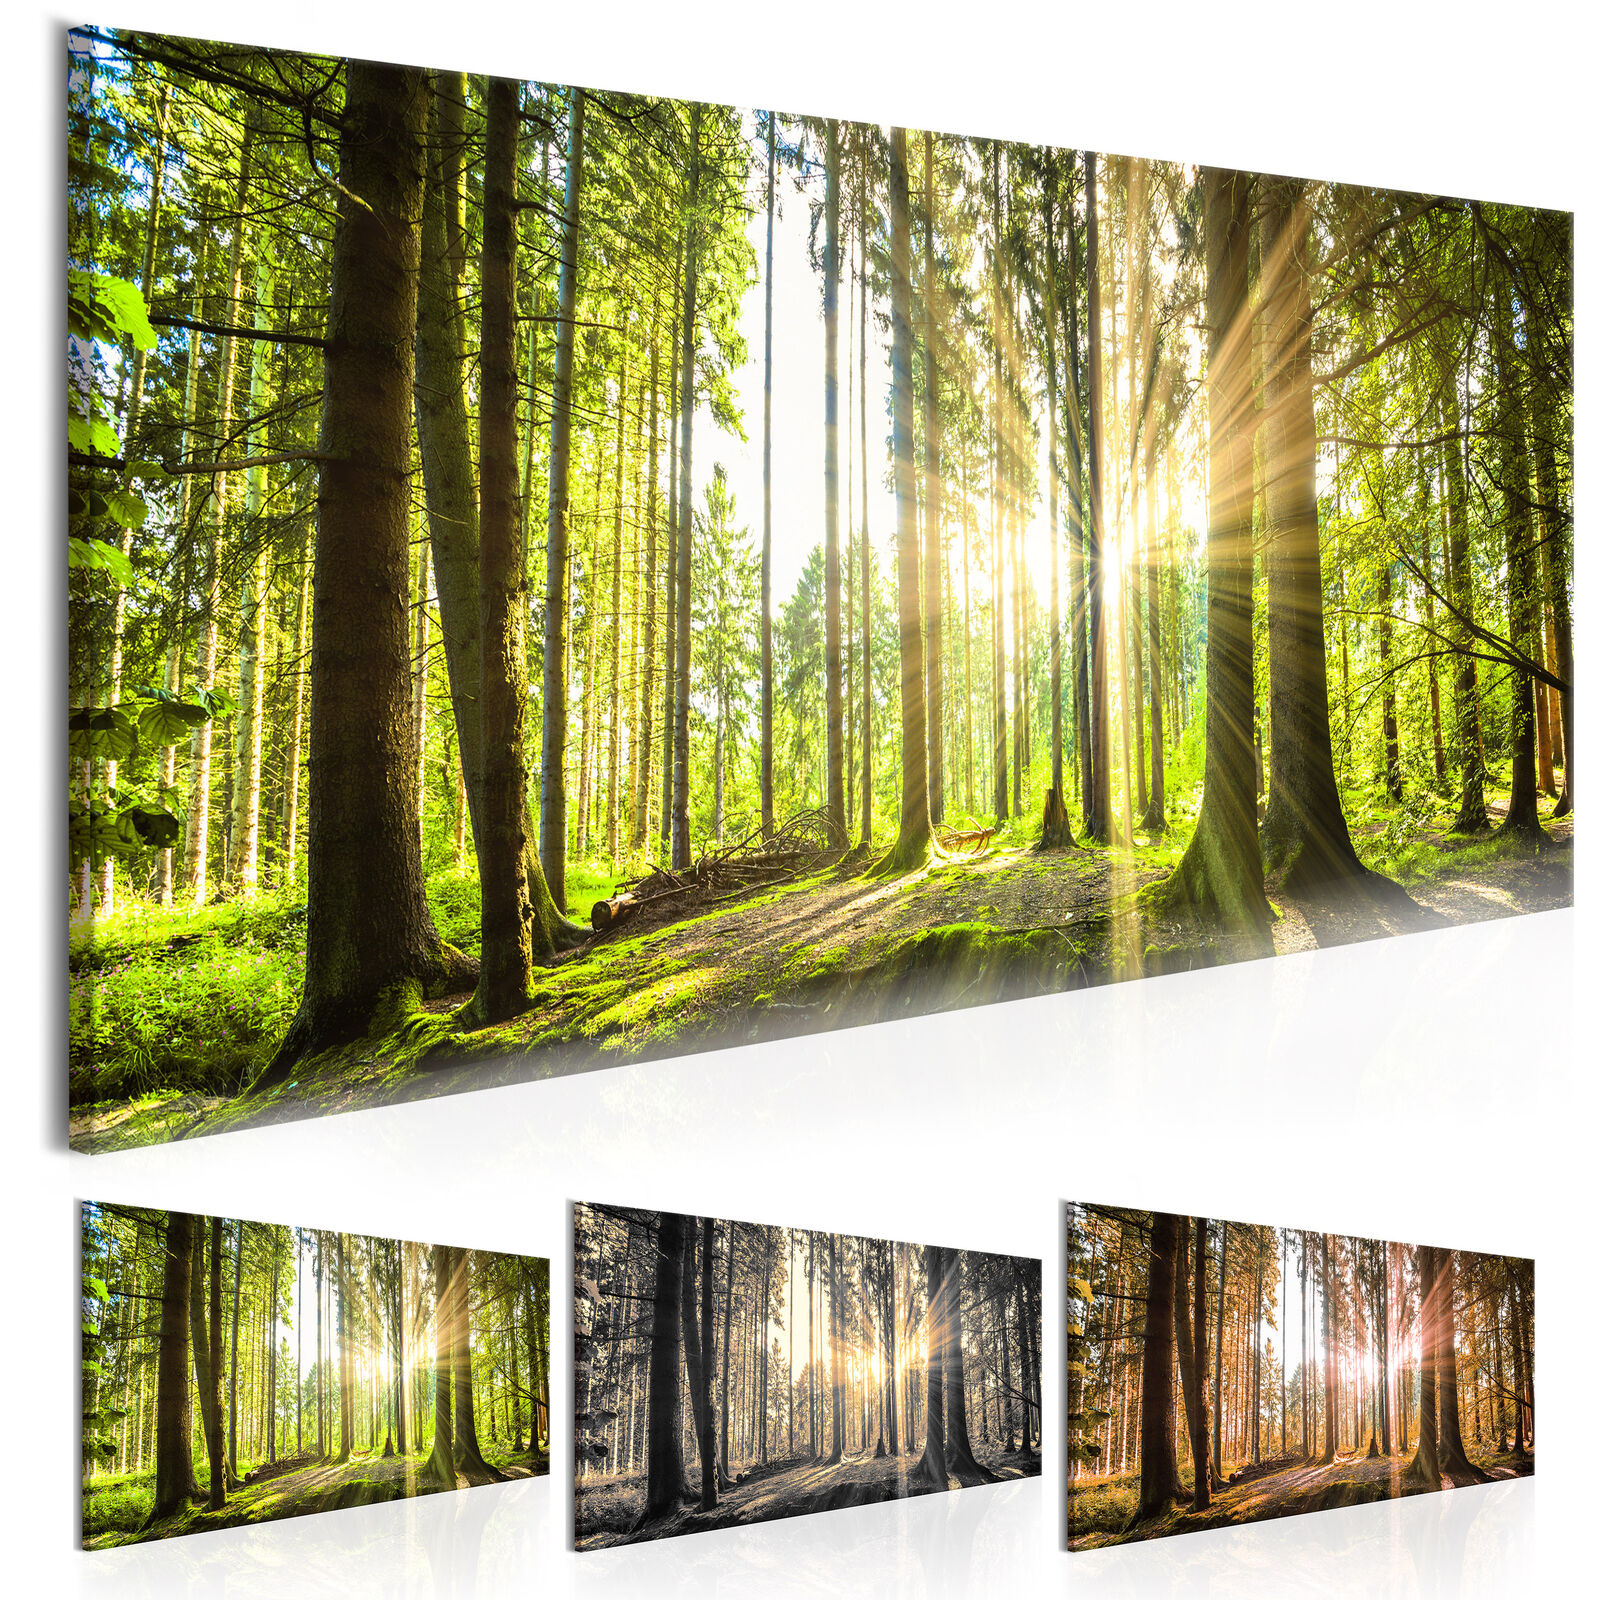 wandbilder wald landschaft leinwand bilder xxl ausblick kunstdruck c b 0077 b b eur 22 90. Black Bedroom Furniture Sets. Home Design Ideas